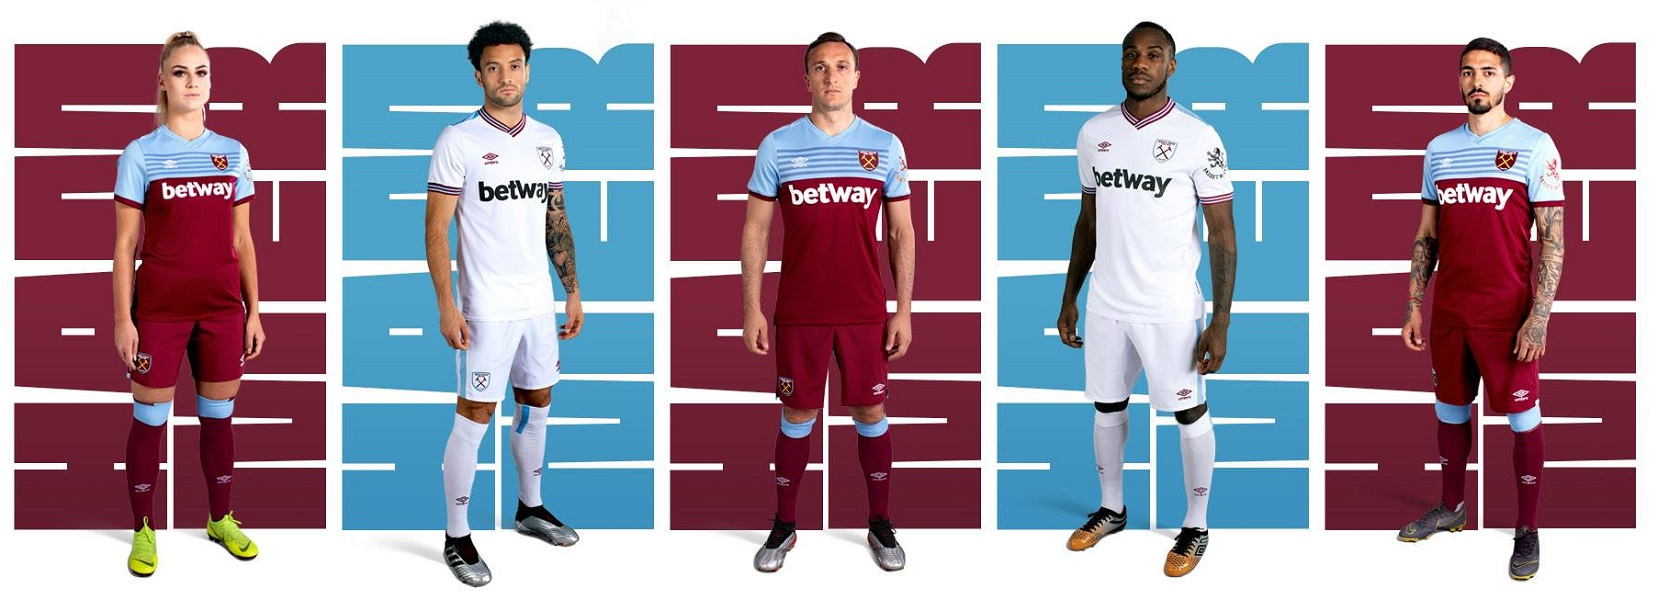 588cb45df West Ham United 2019 2020 Umbro Home and Away Football Kit, Soccer Jersey,  Shirt